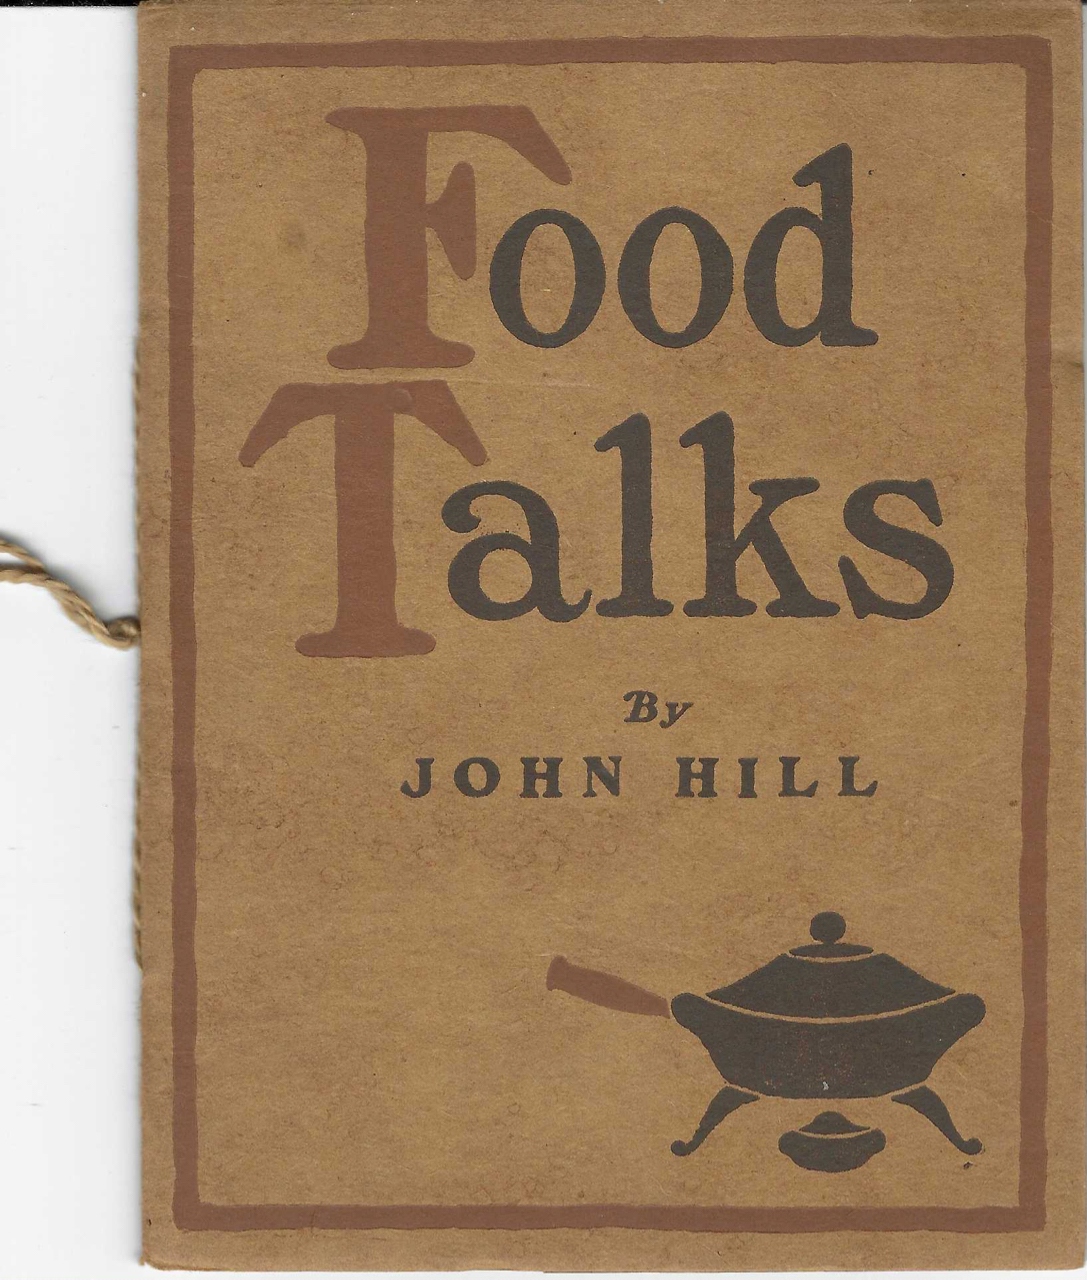 Food Talks. Being a series of Little Talks which first appeared as newspaper advertisements and are here reprinted in response to many requests. John Hill.